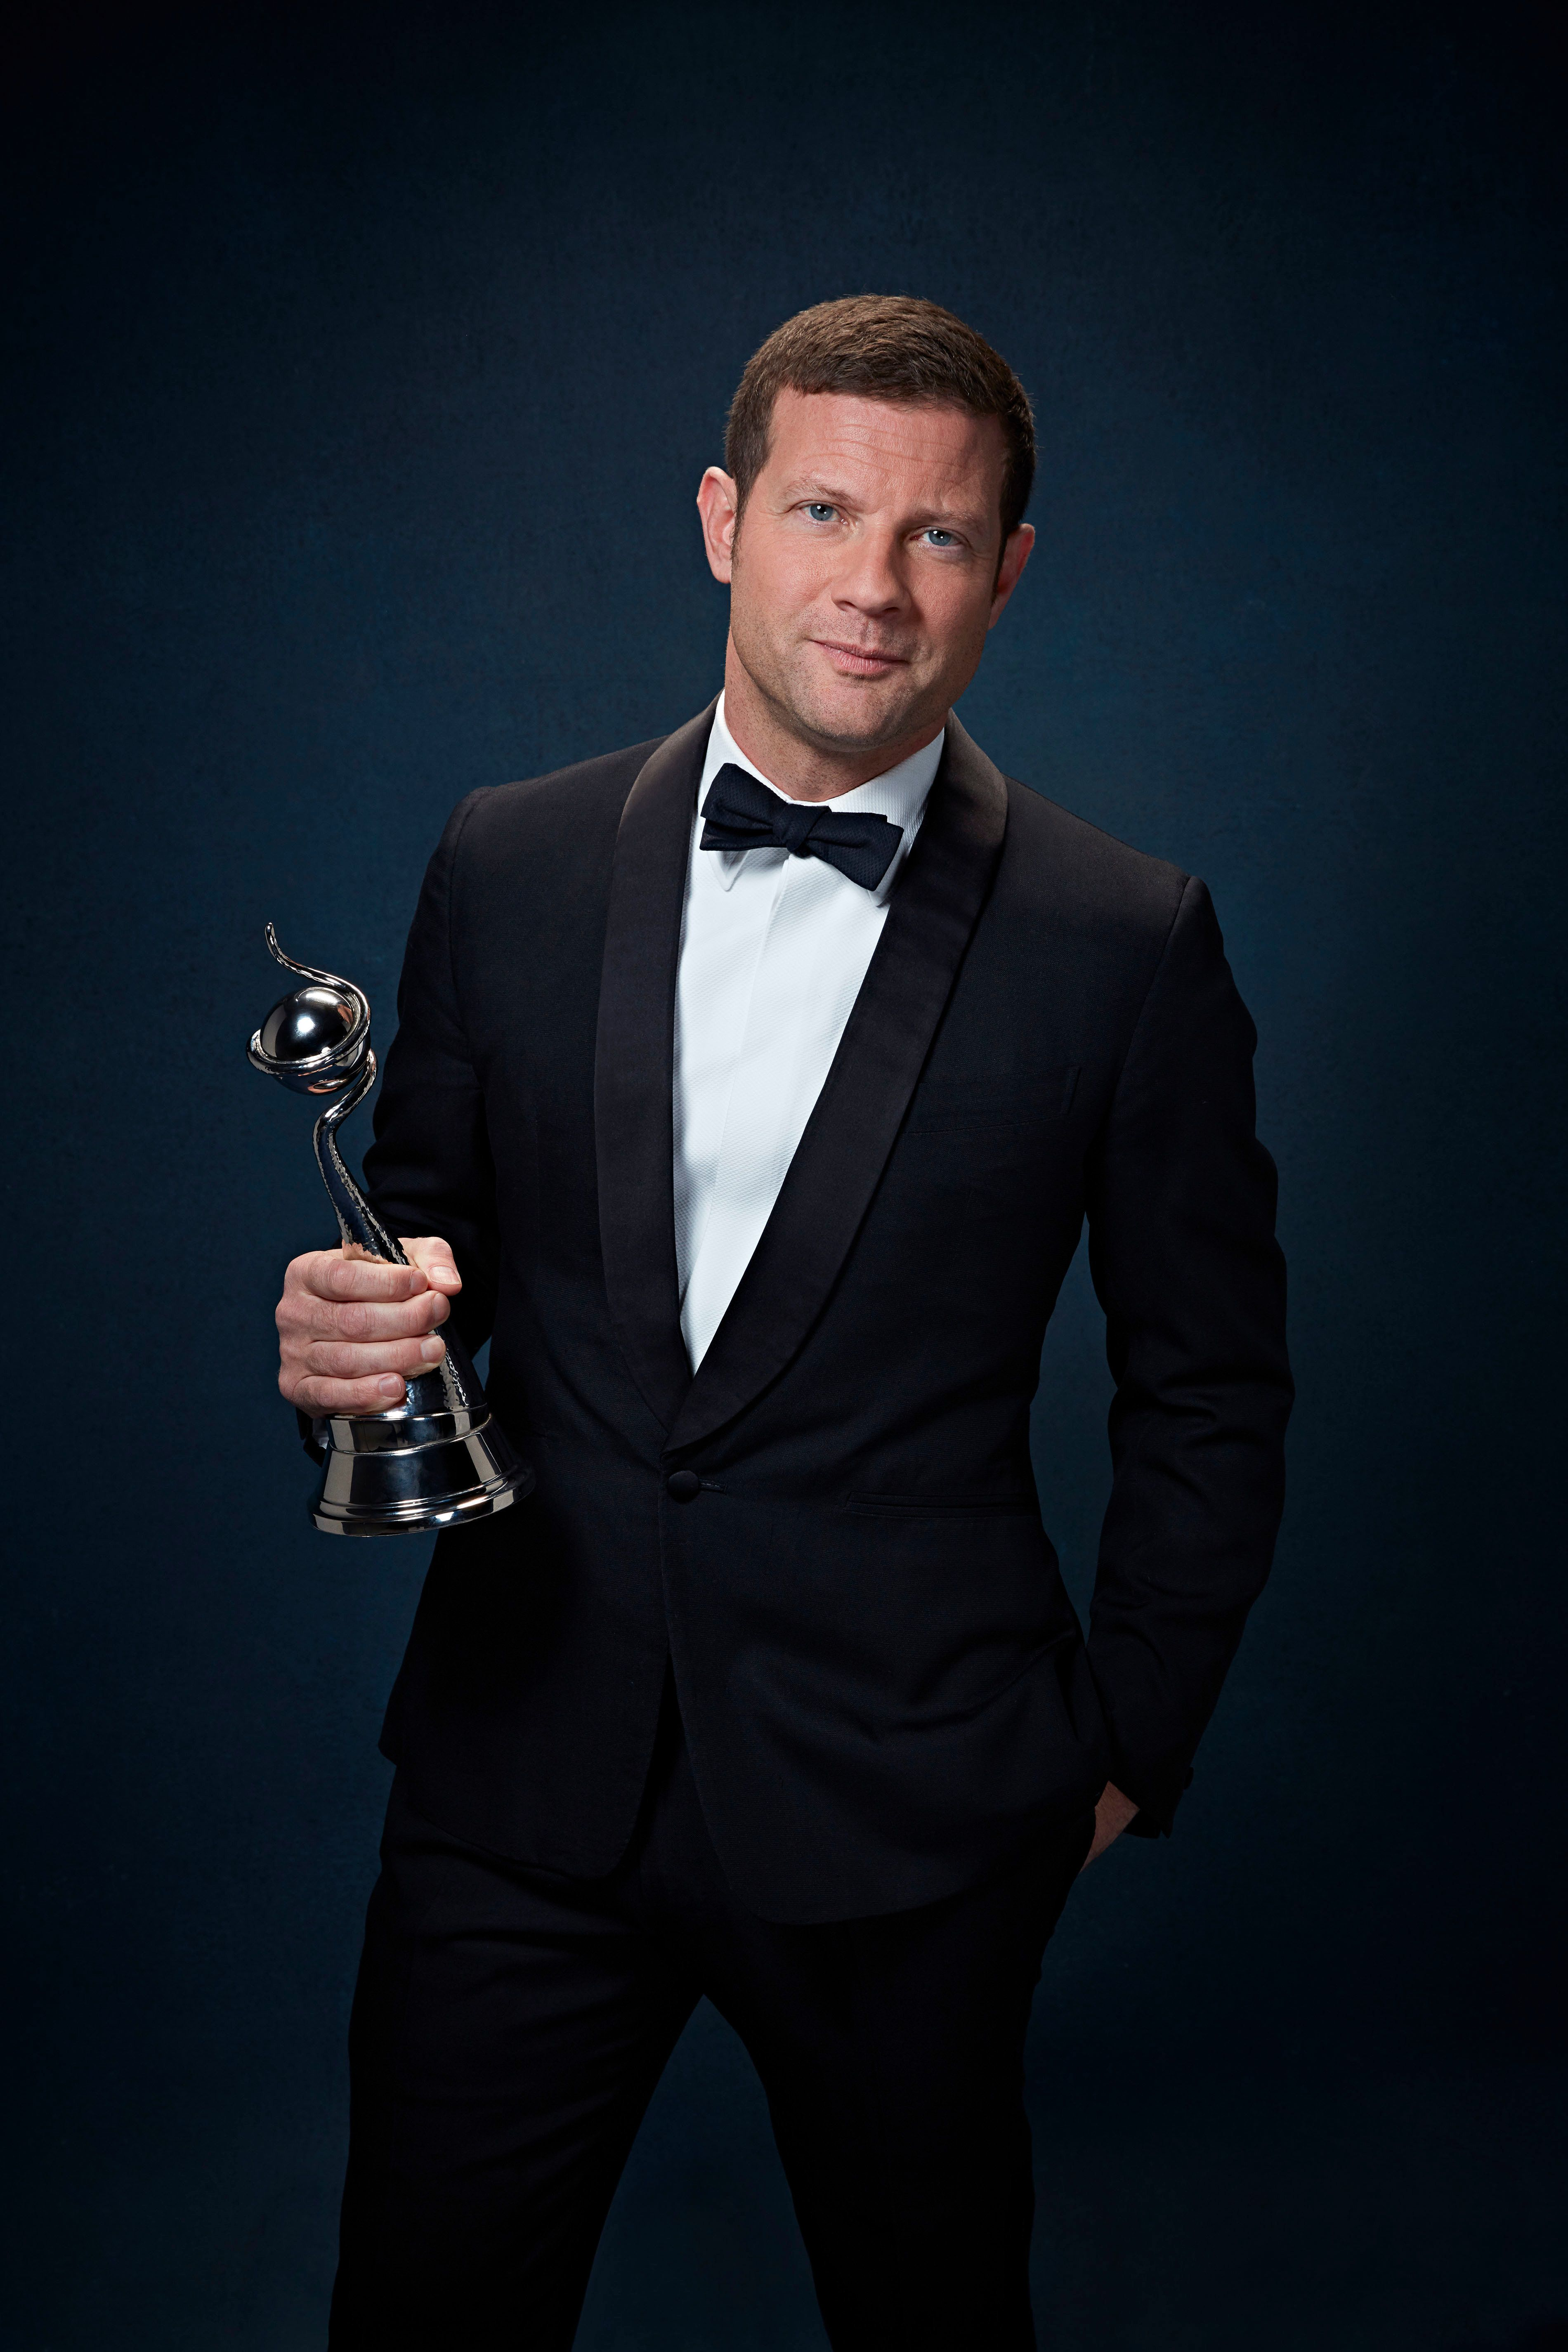 Dermot O'Leary Confirms He's Quitting His Role As NTAs Host After 10